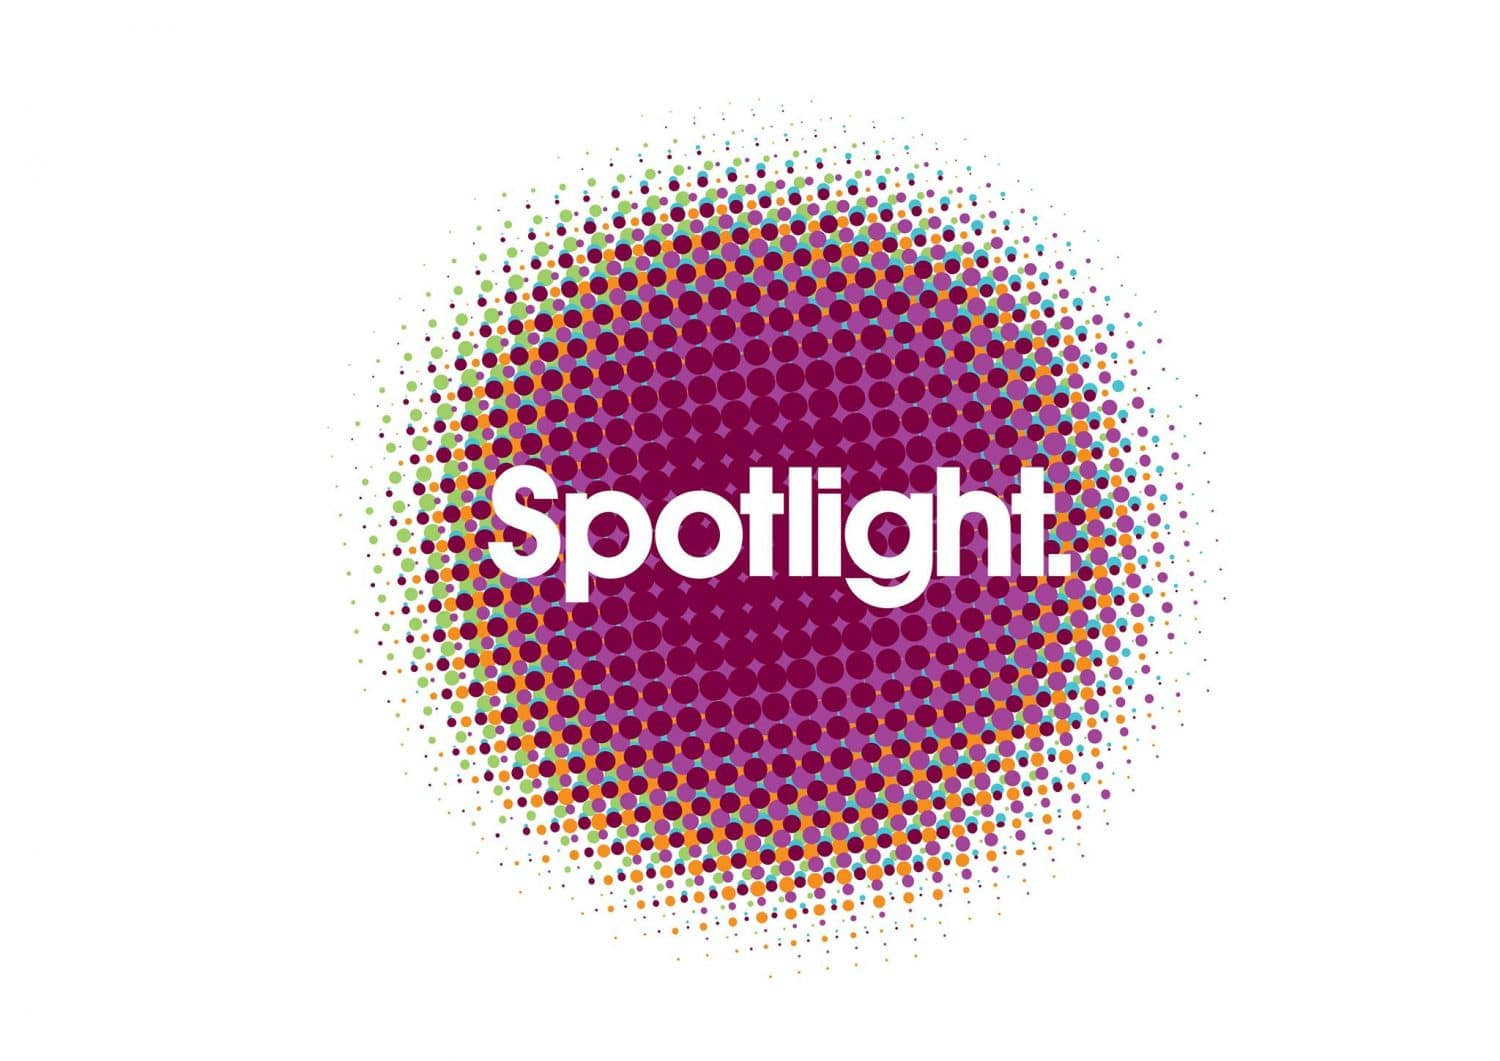 Spotlight, poplar union, spotlight sounds takeover, east London, young talent, hip hip, grime, rock, r n b, spoken word, take over, live music, record label, gigs, London gigs, community, poplar, showcasing, unsigned, music, art, culture